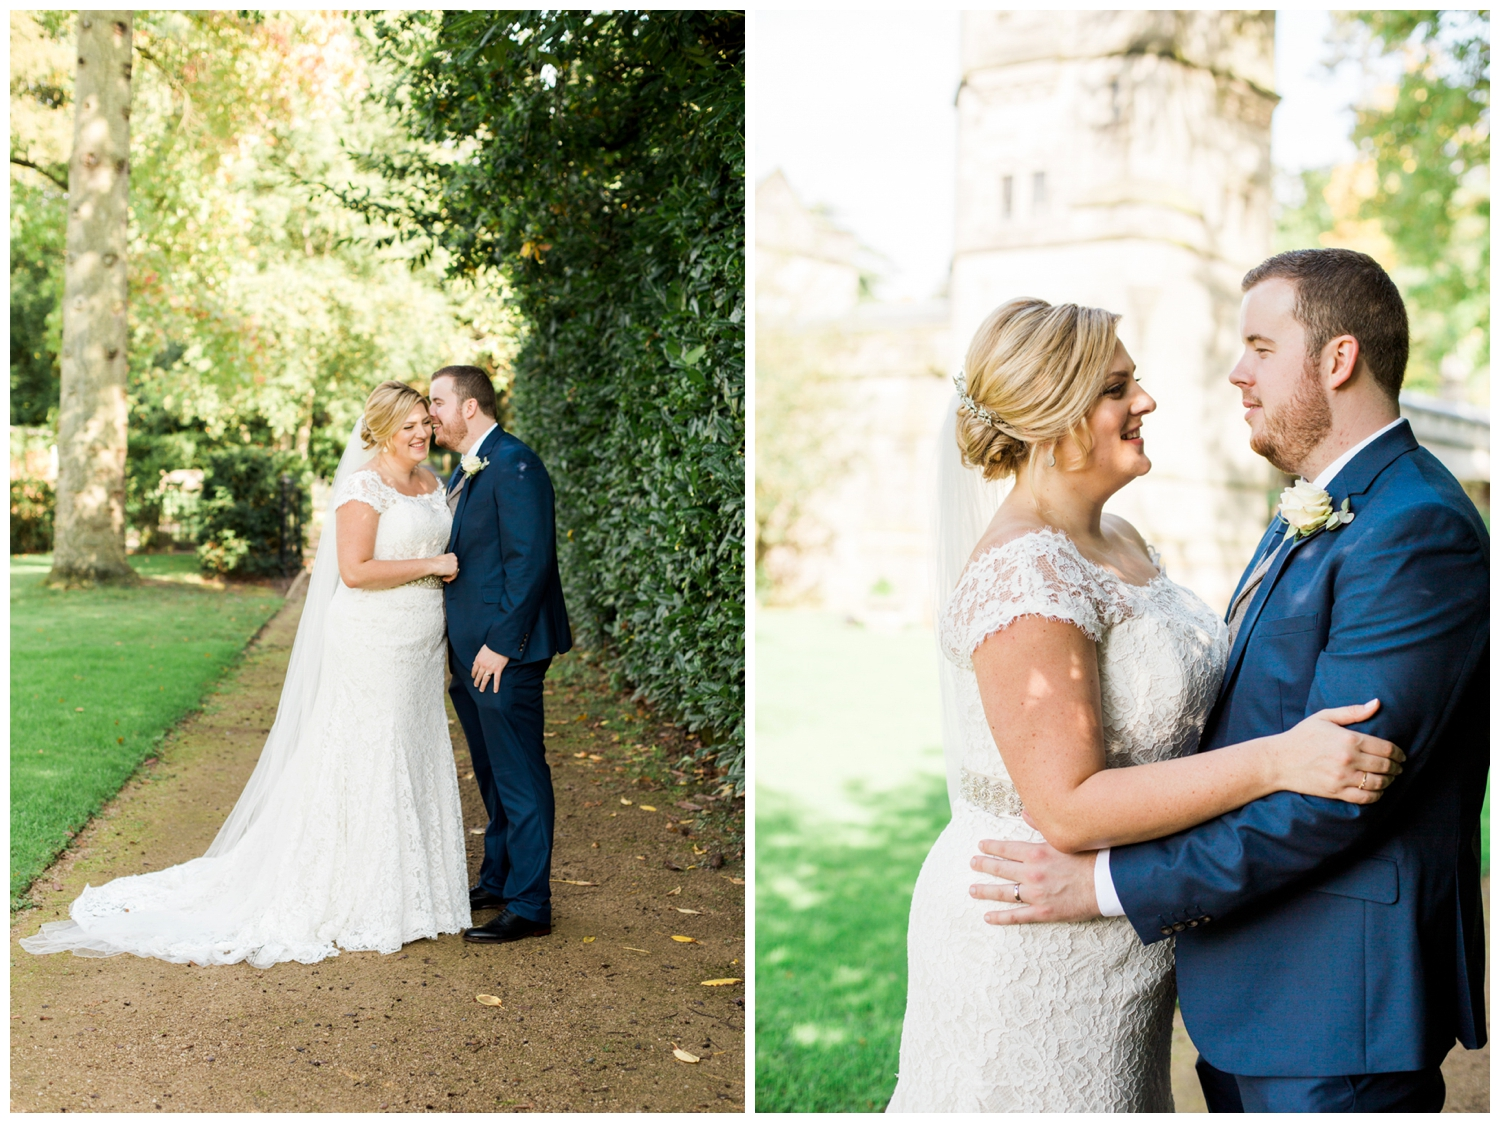 Sophie Evans Photography -  Hampton Manor Wedding - Warwickshire Wedding Photographer-85.jpg